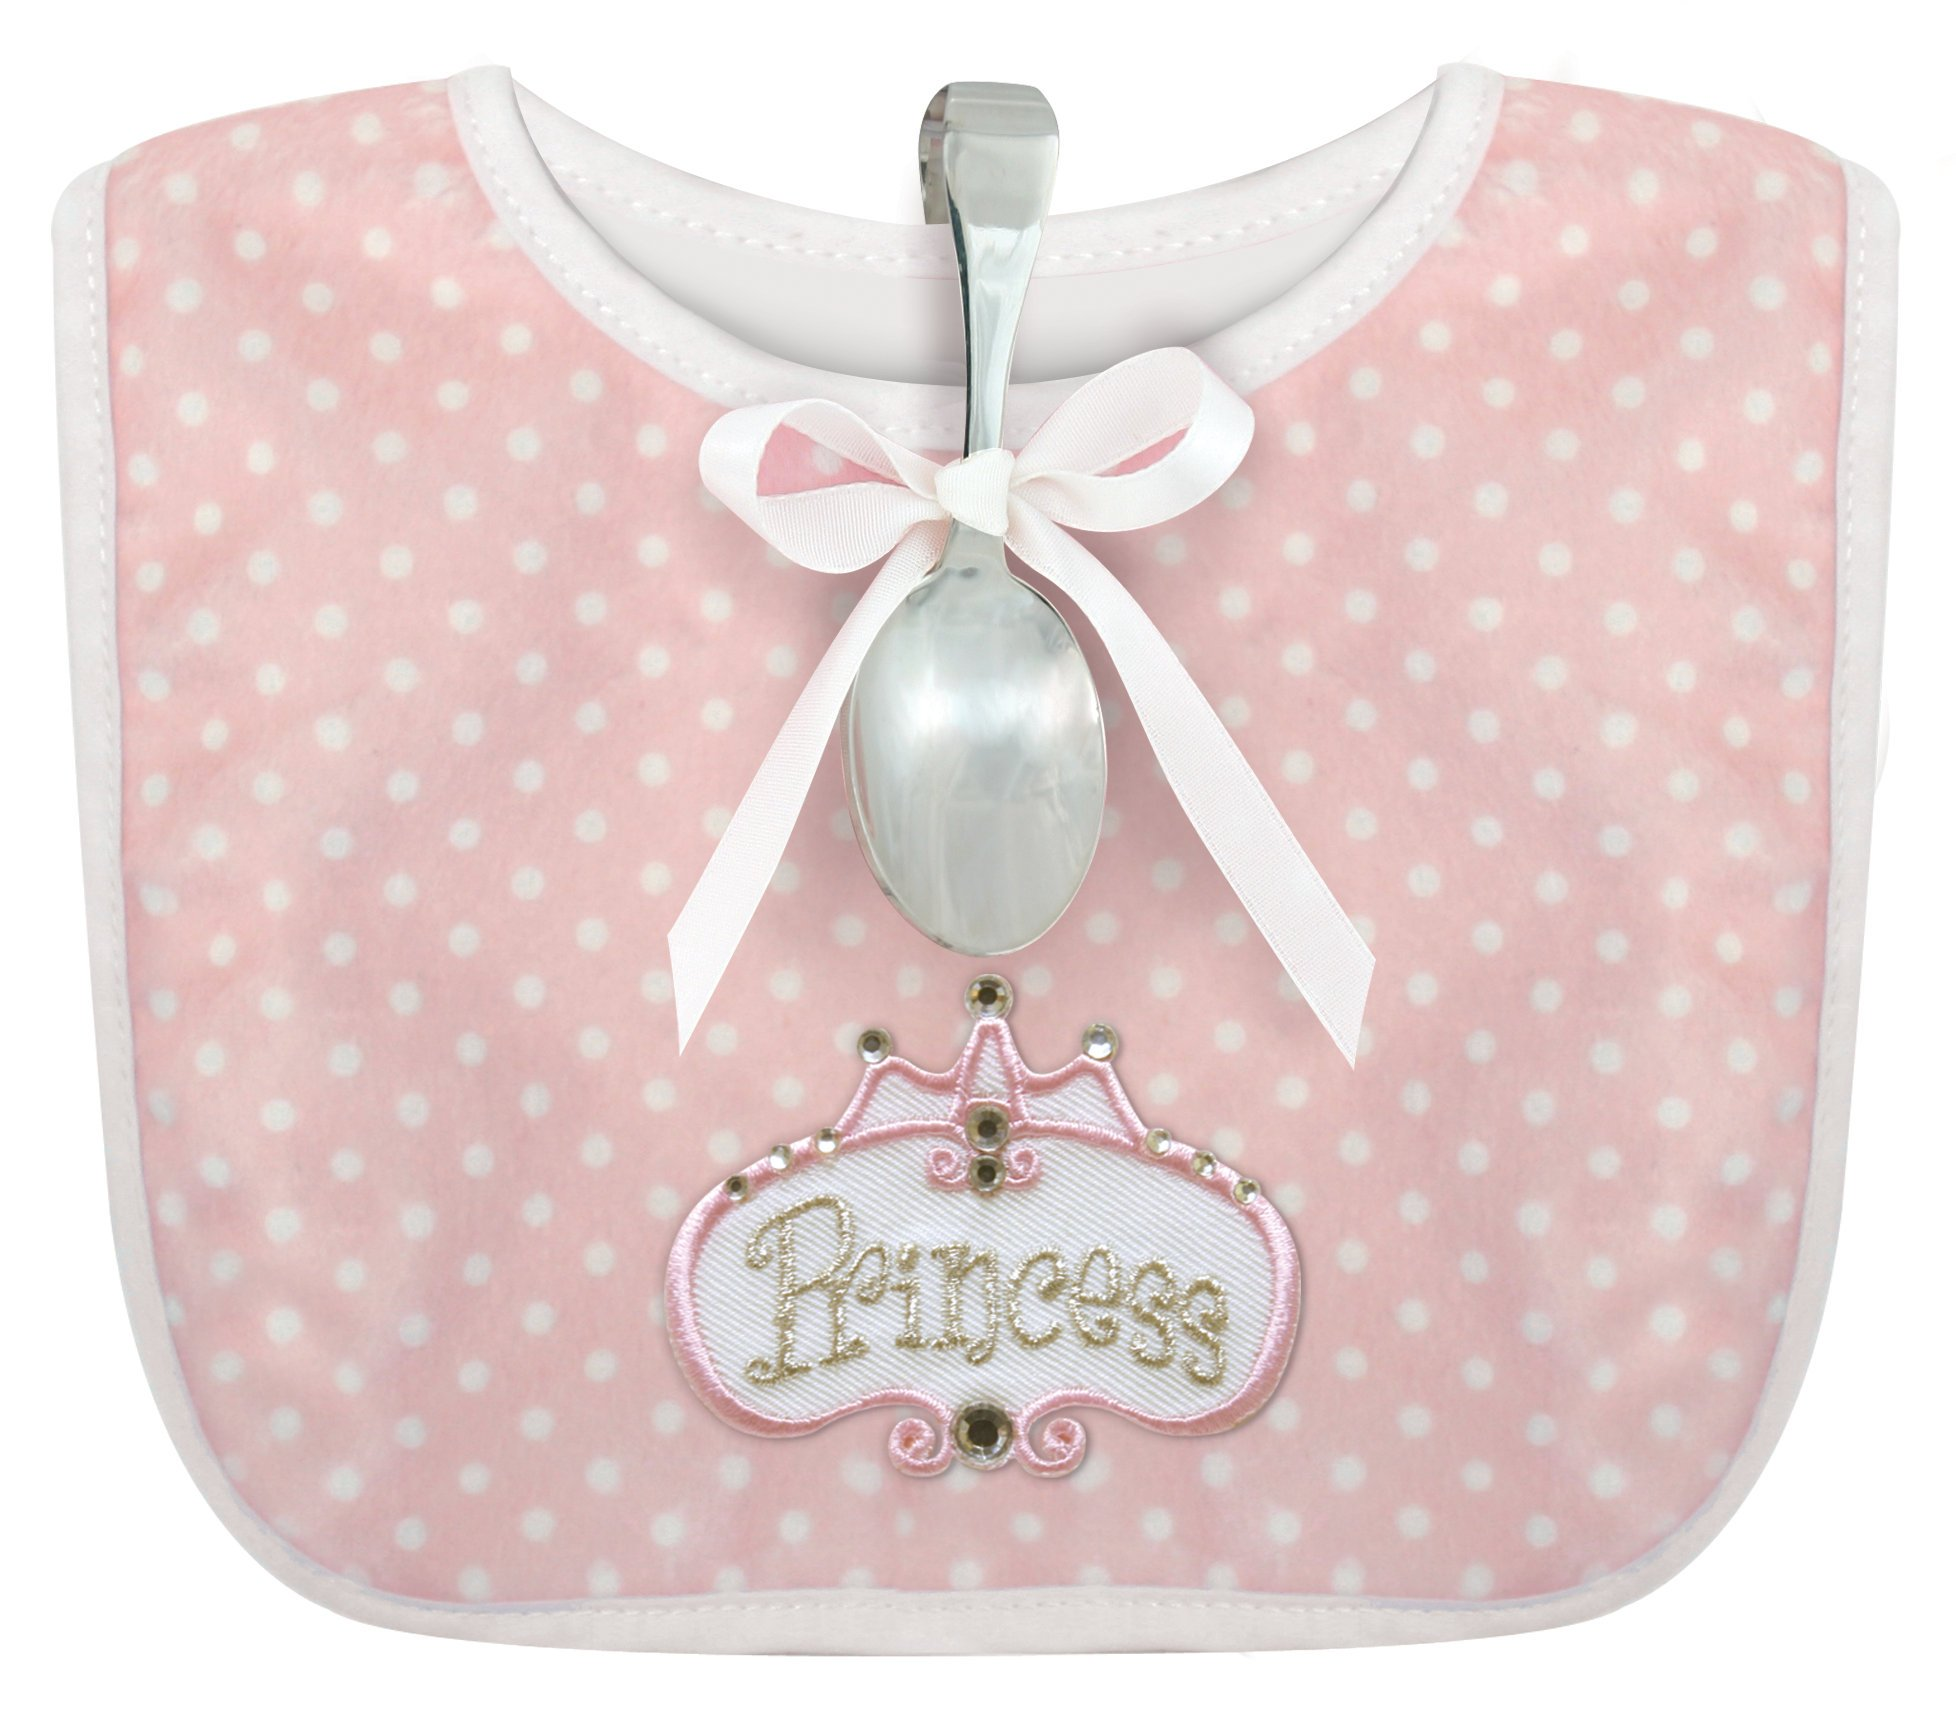 Stephan Baby Infant Girl Polka Dot Bib and Silver Plated Bent-Handled Spoon Gift Set, Little Princess by Stephan Baby